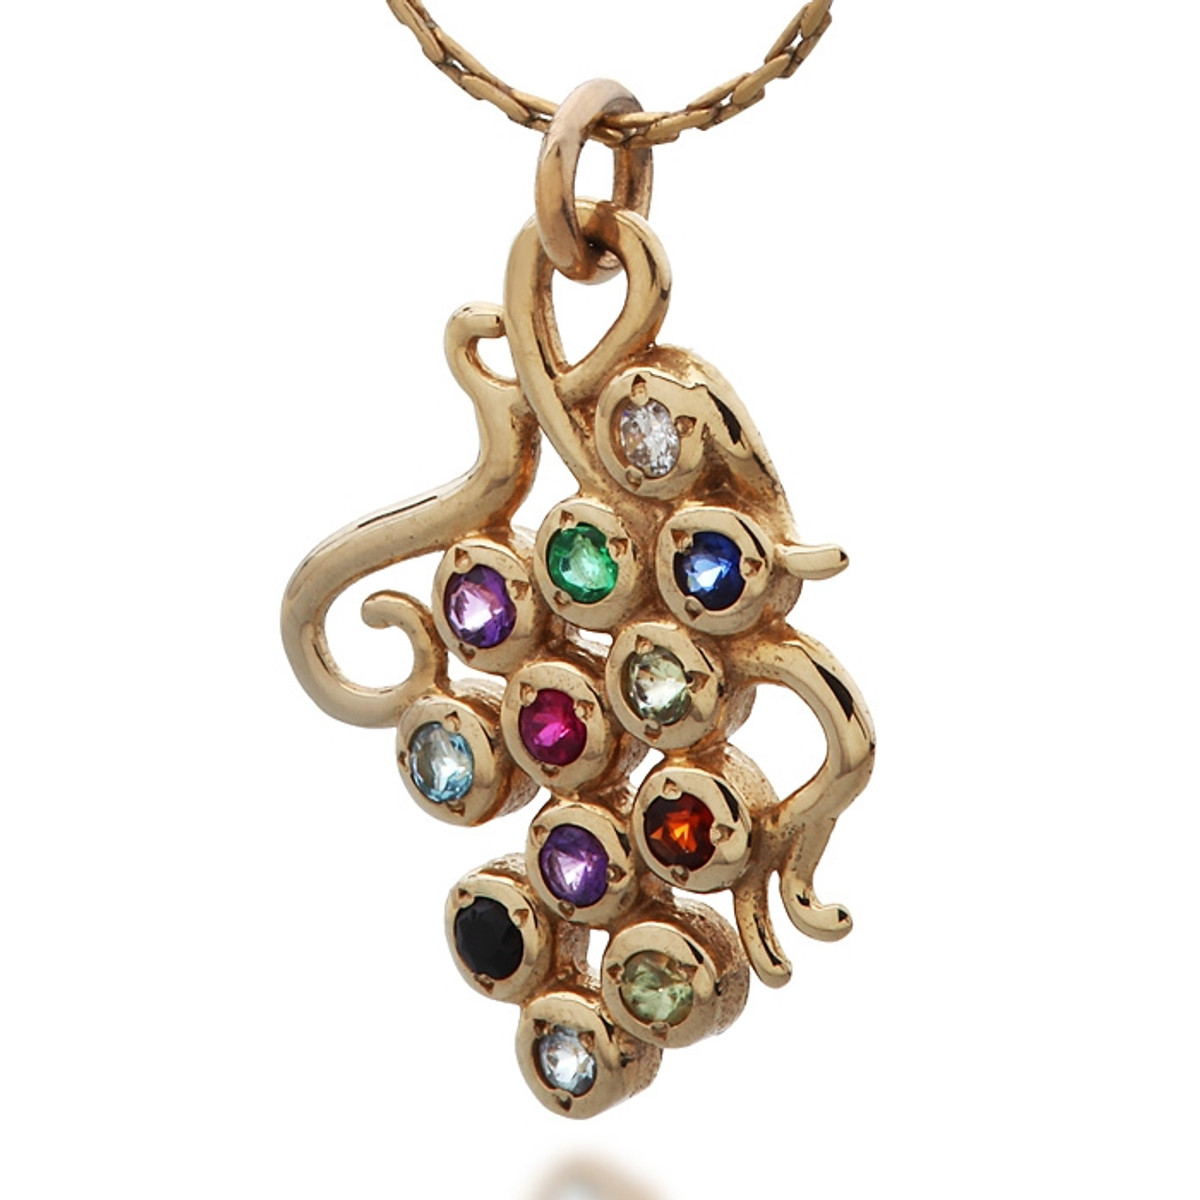 Grapes Hoshen Pendant for Protection and Abundance by Haari